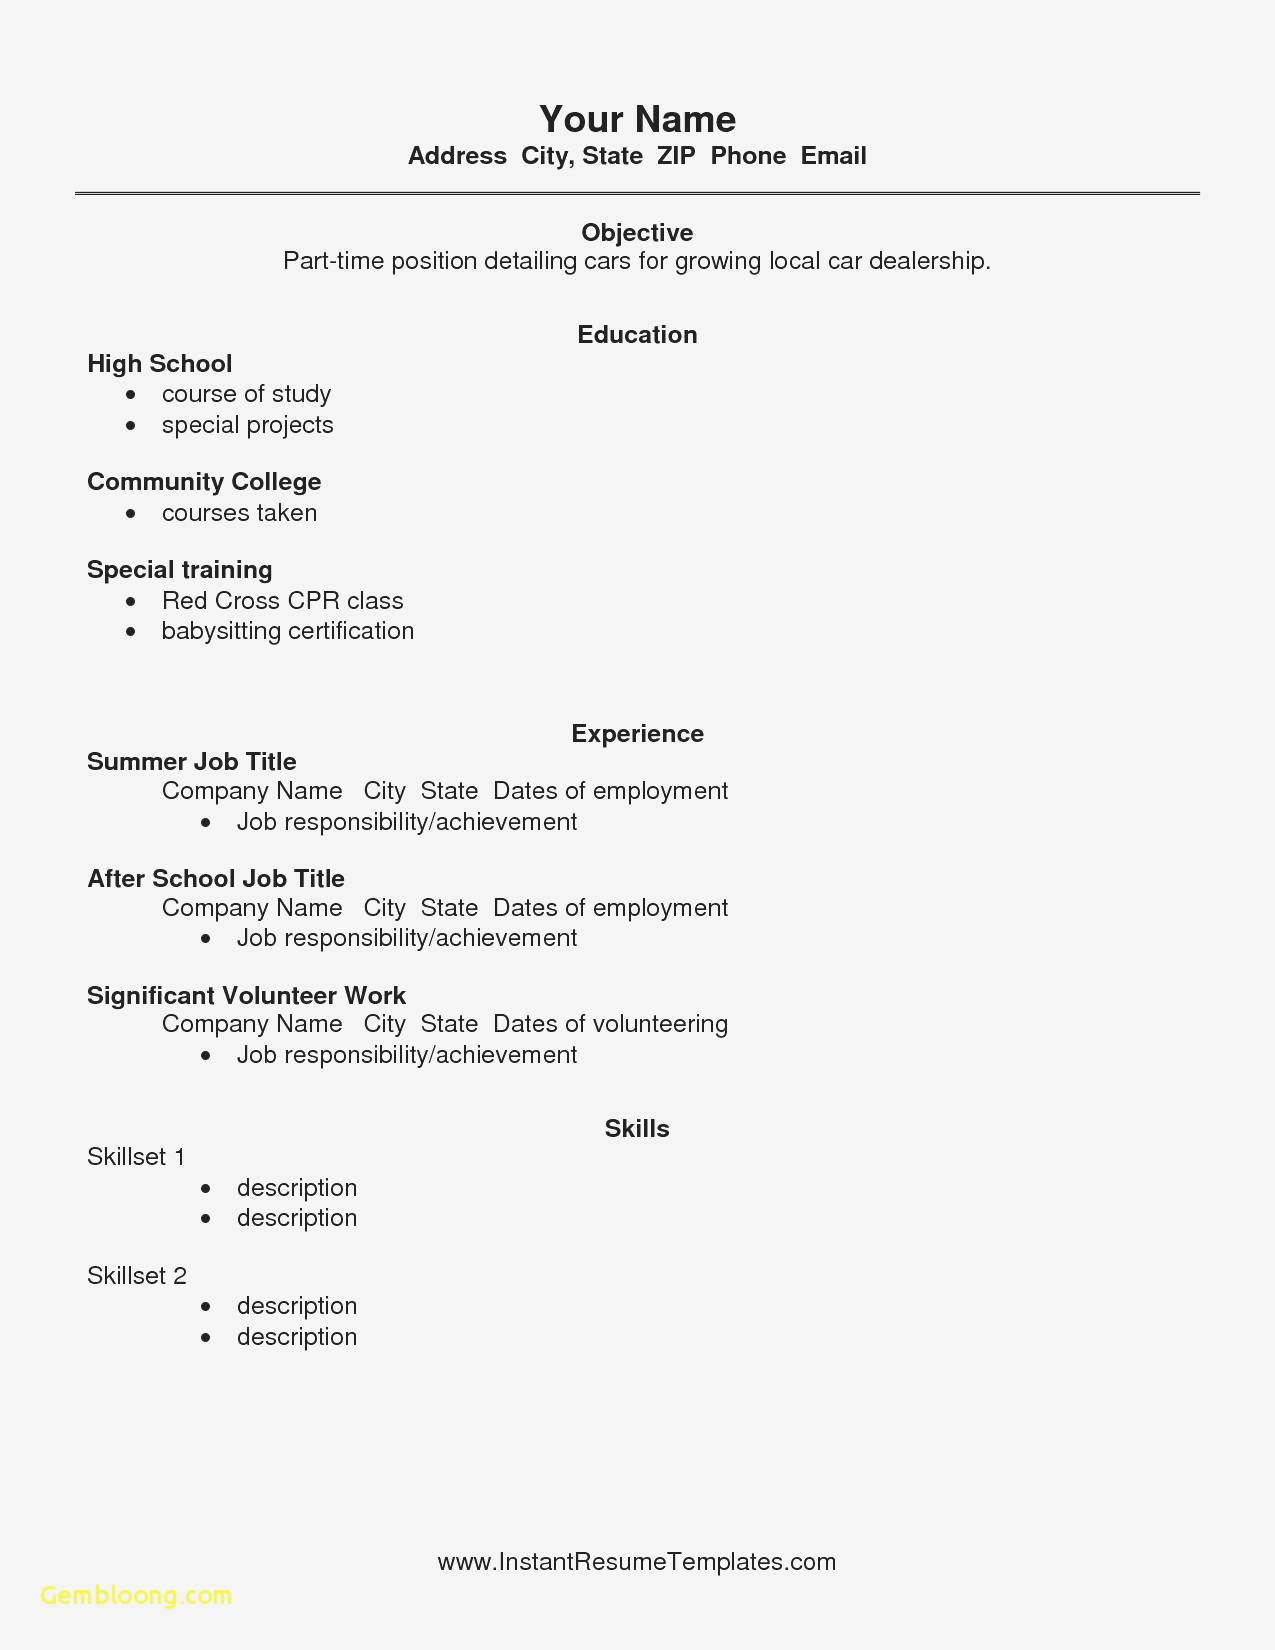 Sample Resume Templates For Highschool Students